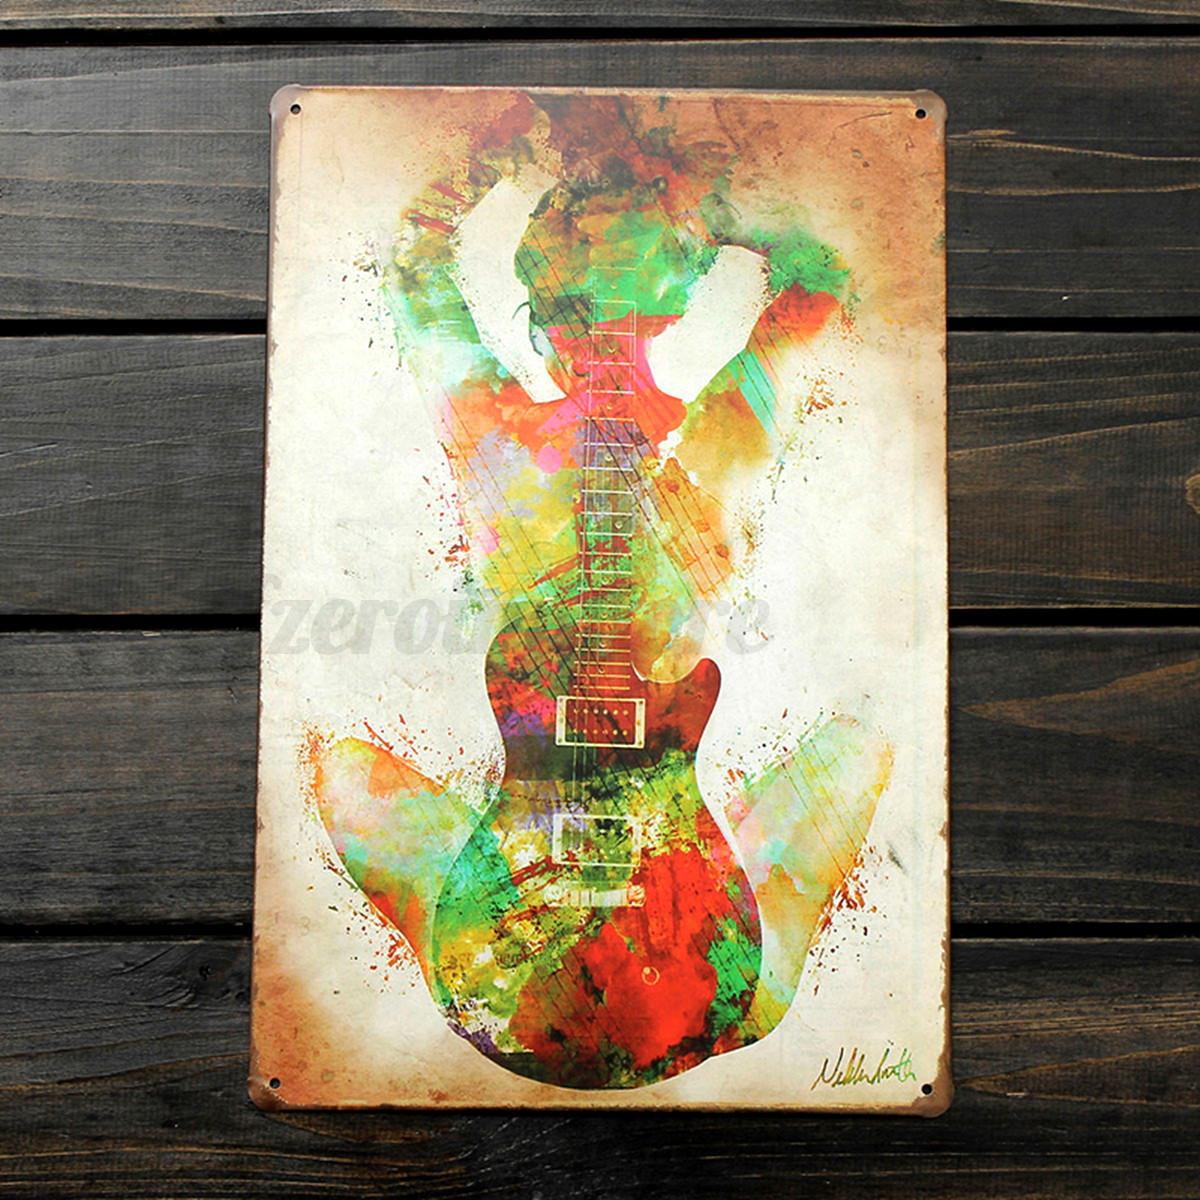 Metal-Poster-Pub-Wall-Decor-Tavern-Shabby-Chic-Bar-Club-Vintage-Sign-Tin-Plaque thumbnail 8